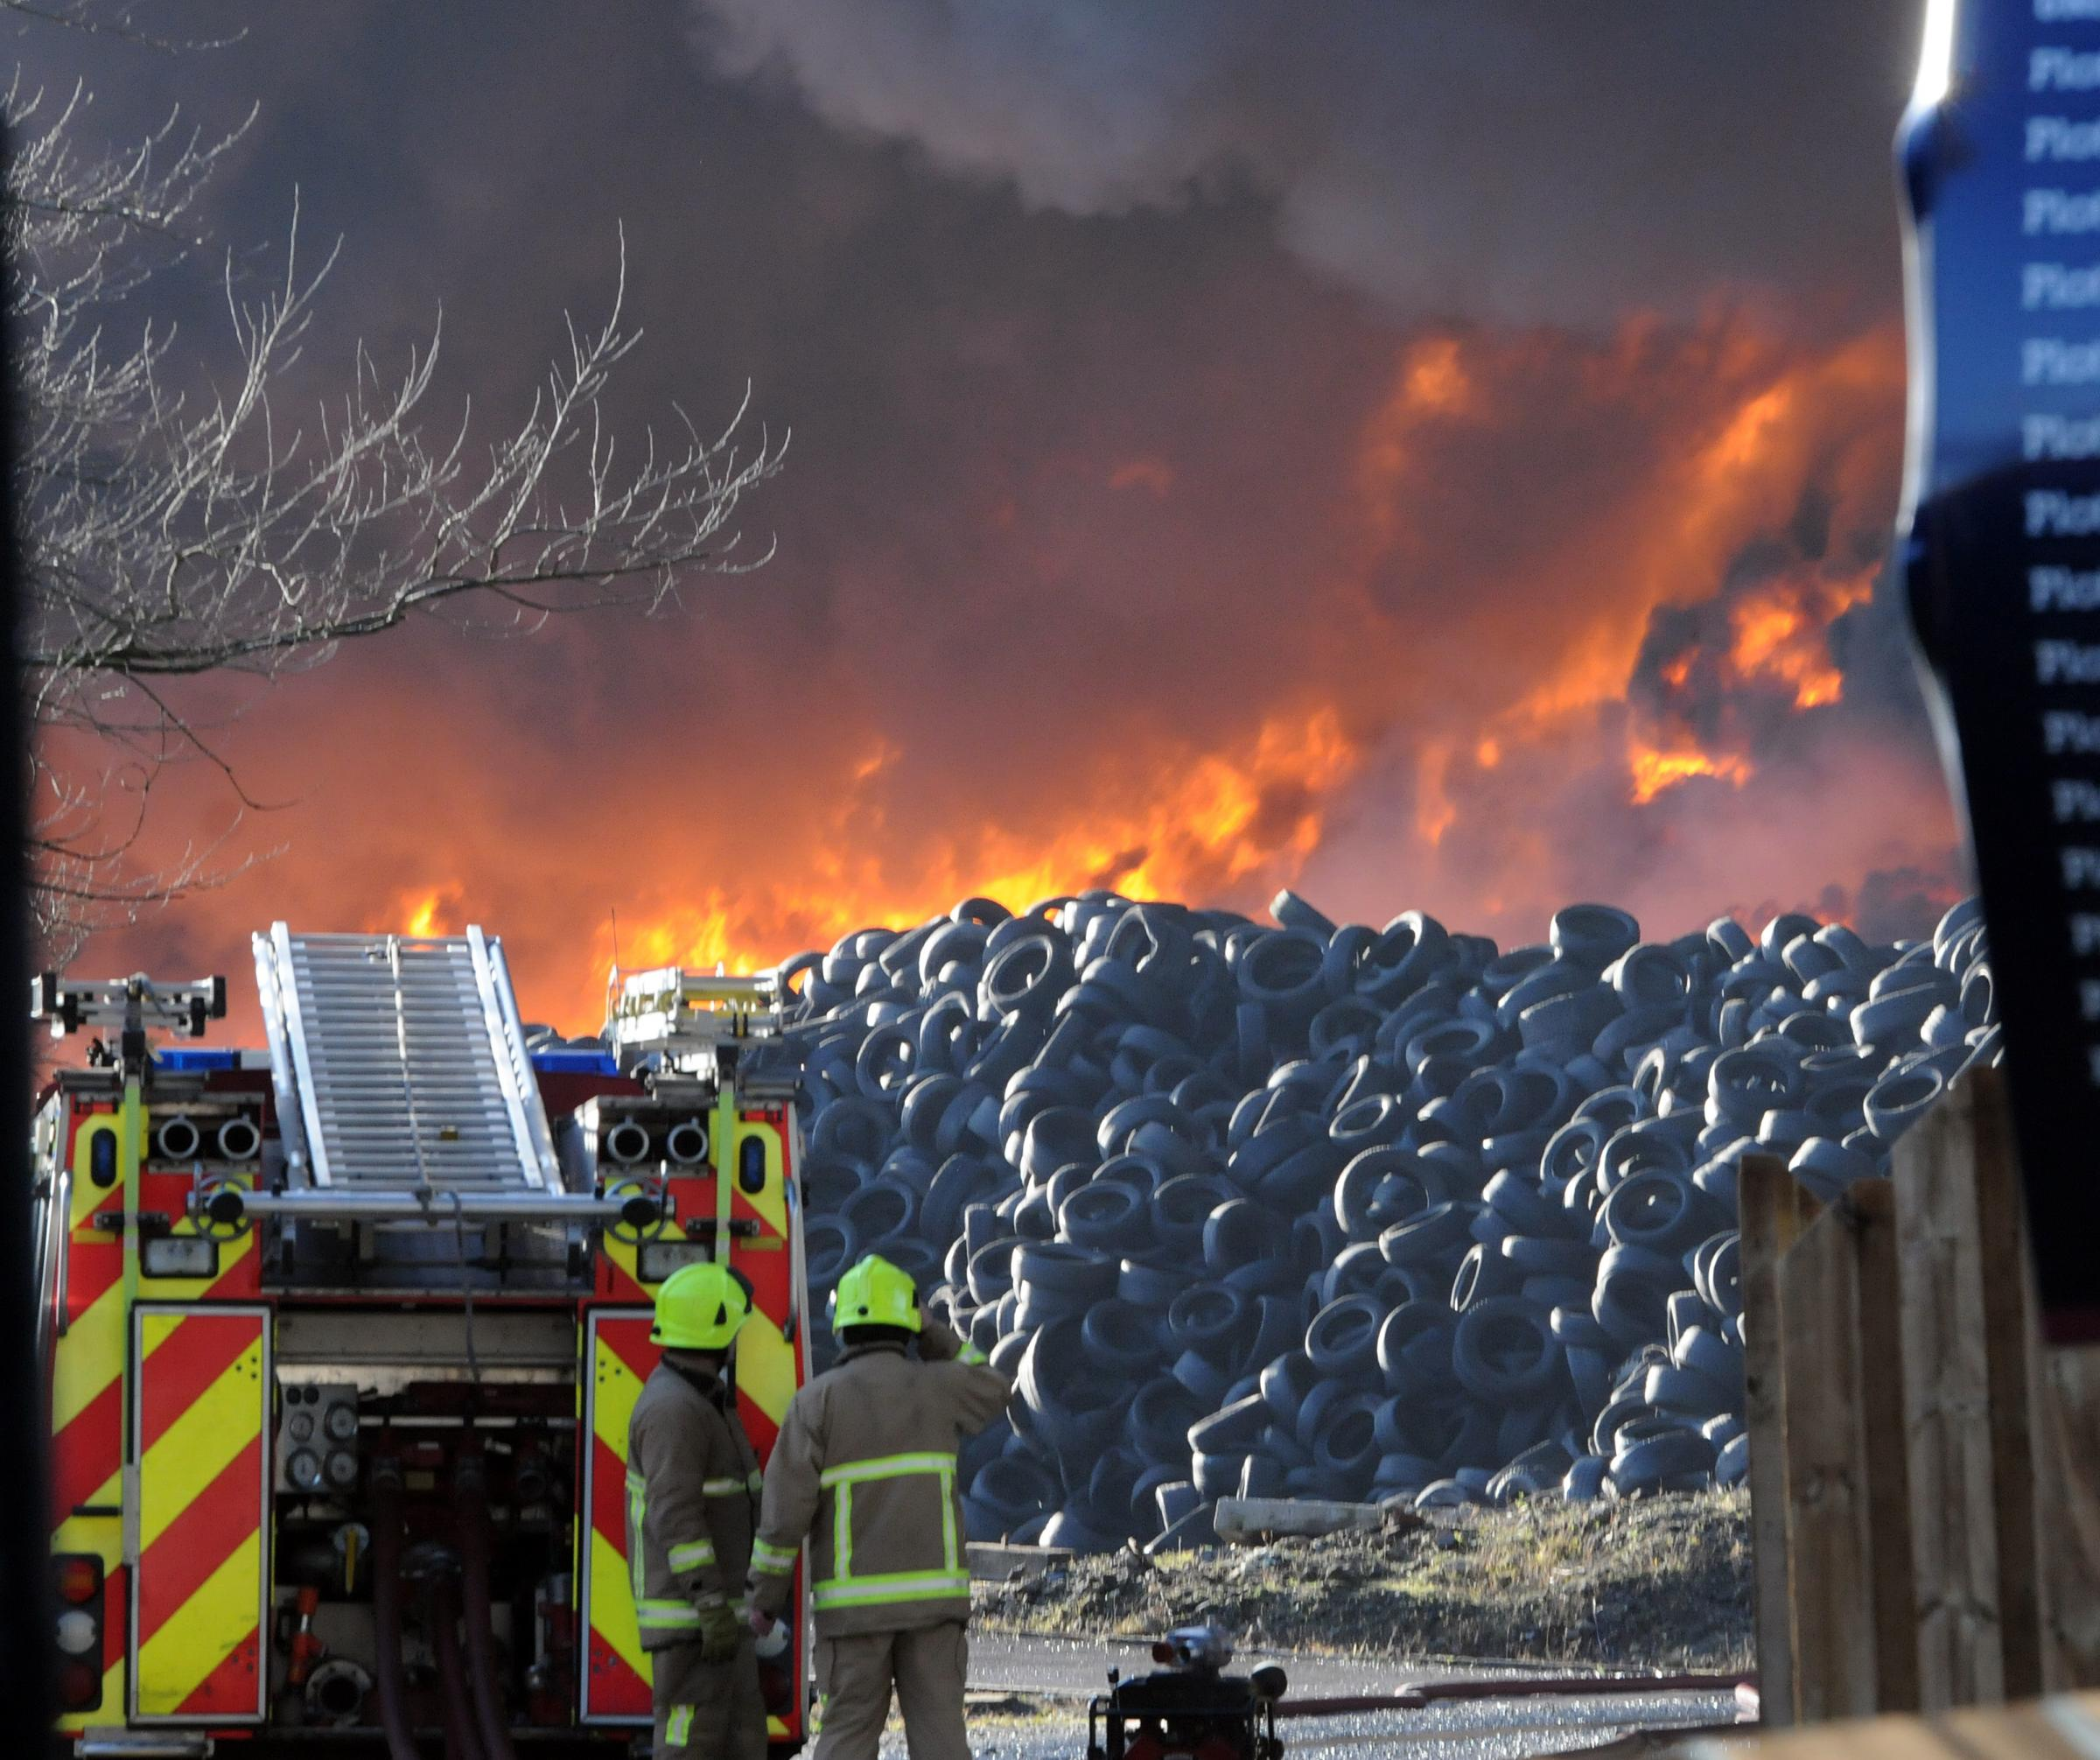 Tons of tyres go up in smoke at Sherburn-in-Elmet